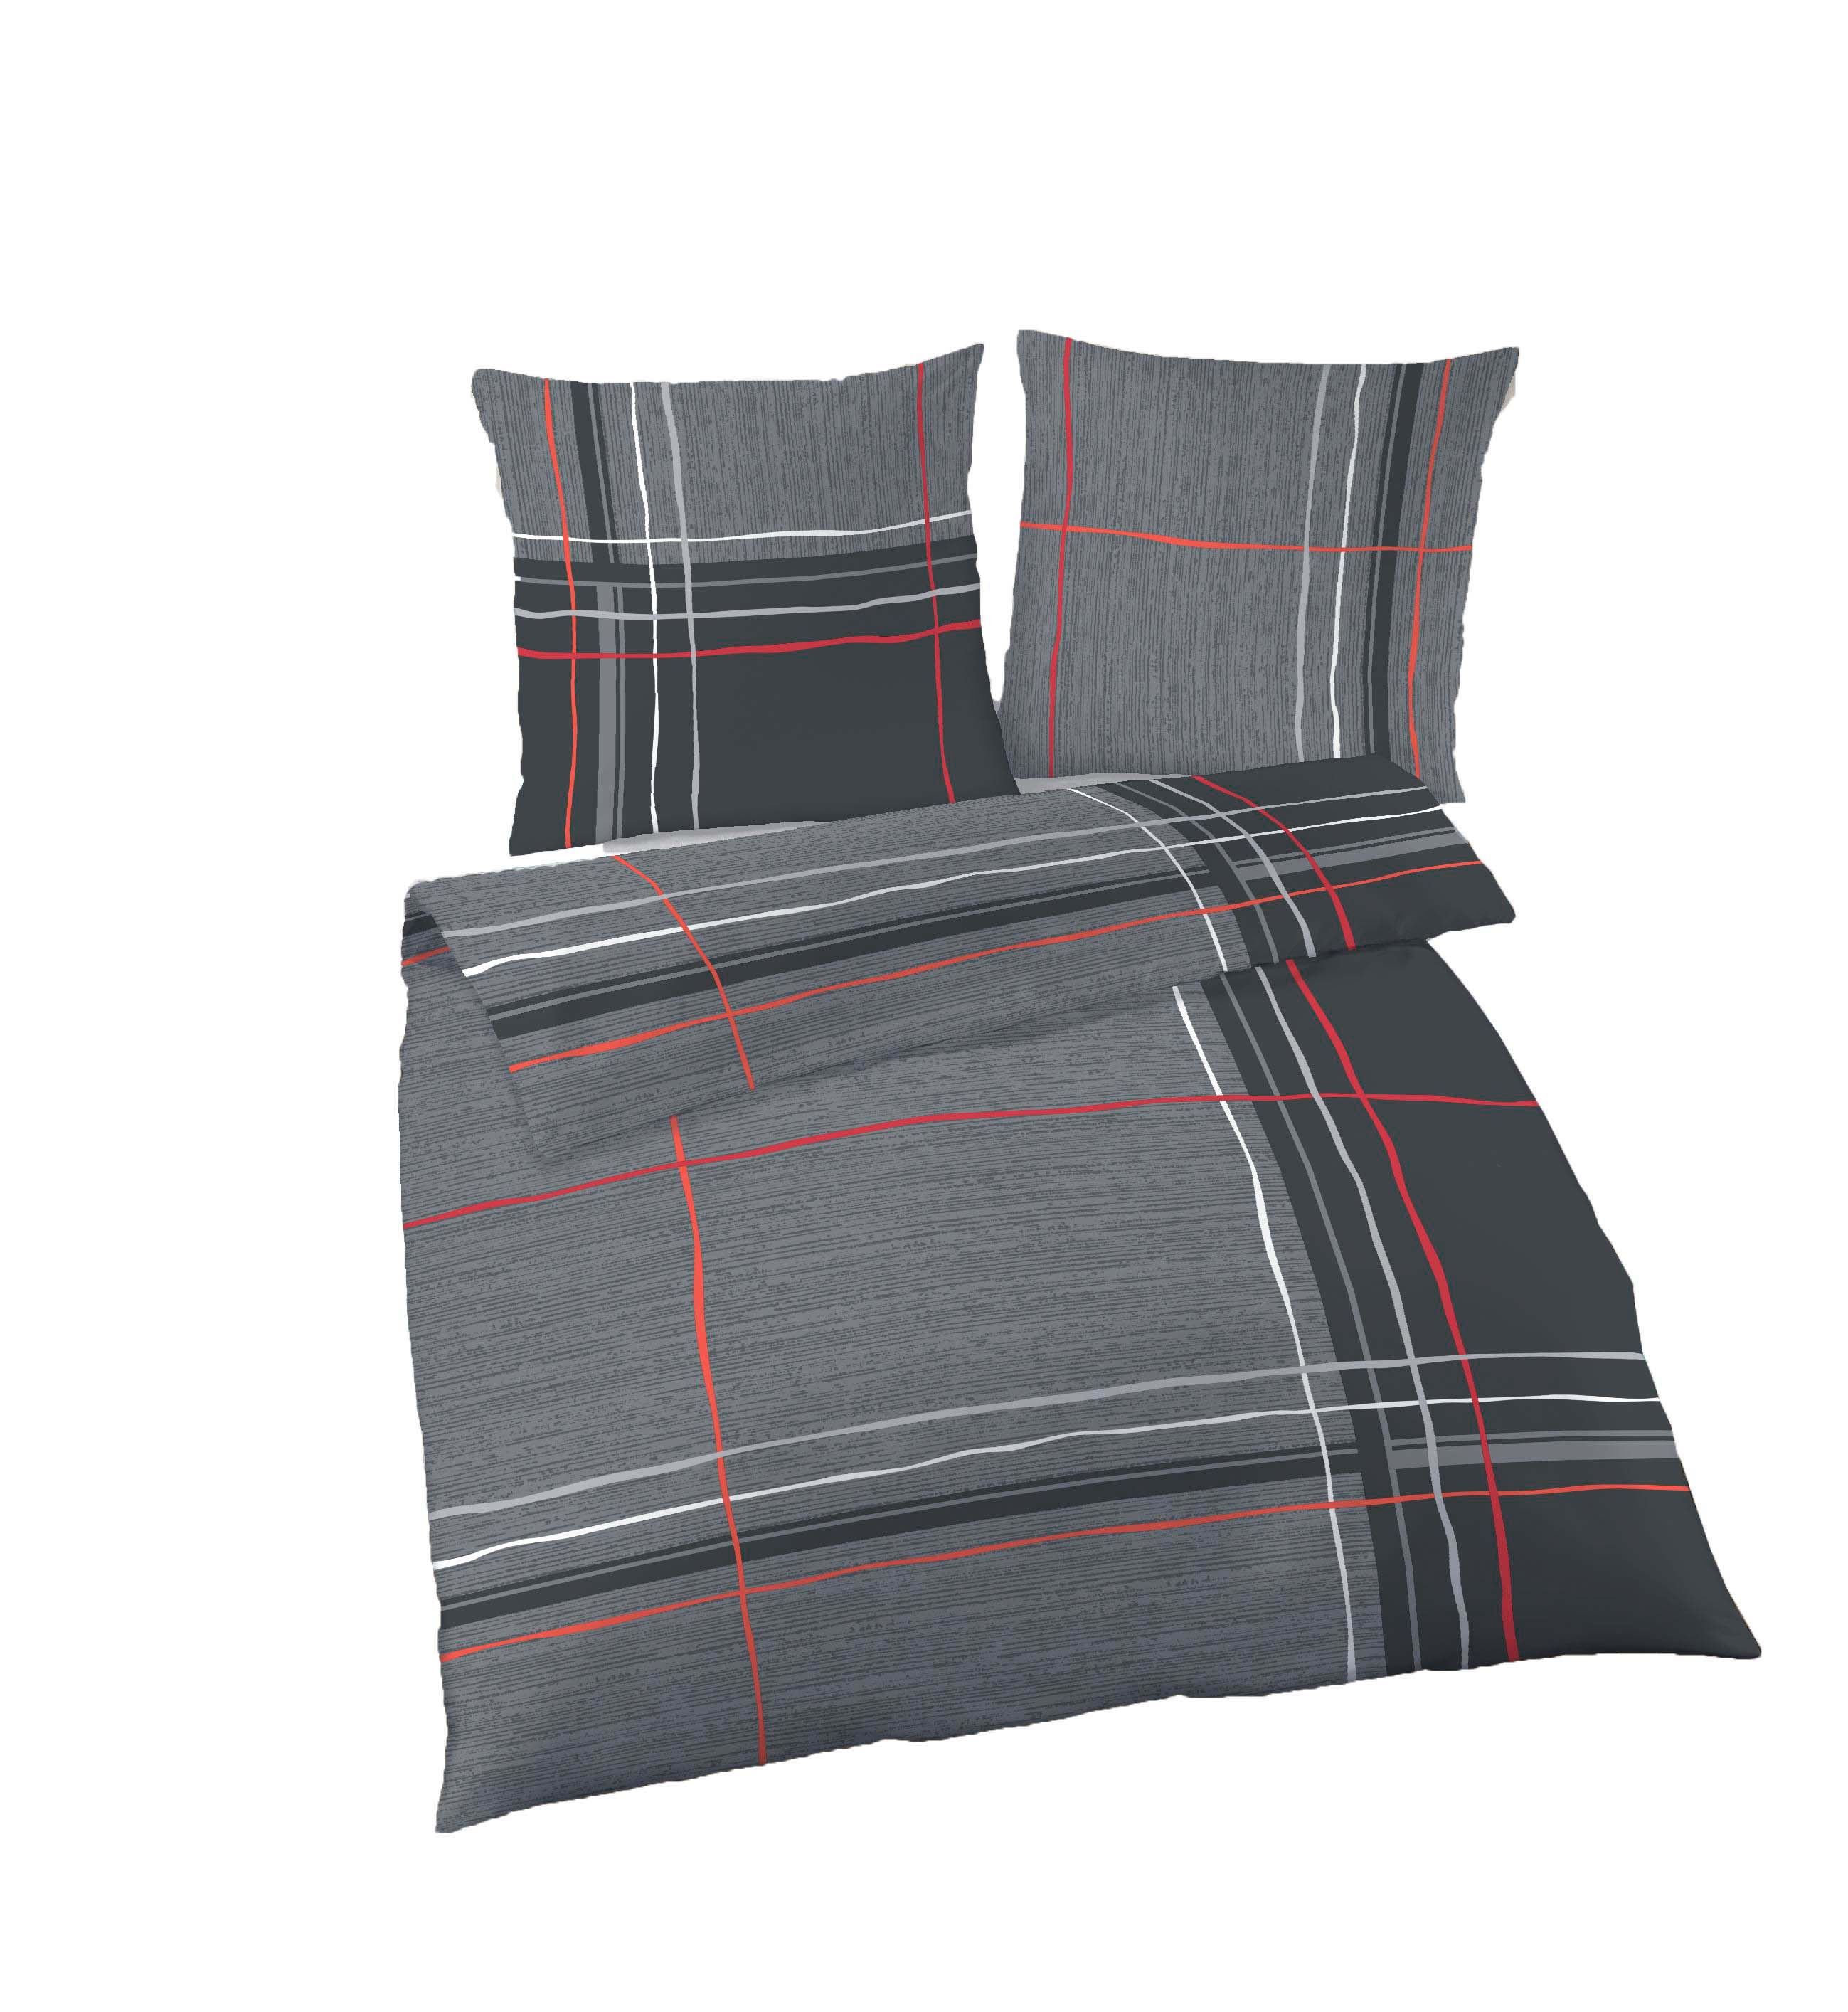 2 tlg bettw sche 135 x 200 cm grau rot fein biber baumwolle ebay. Black Bedroom Furniture Sets. Home Design Ideas